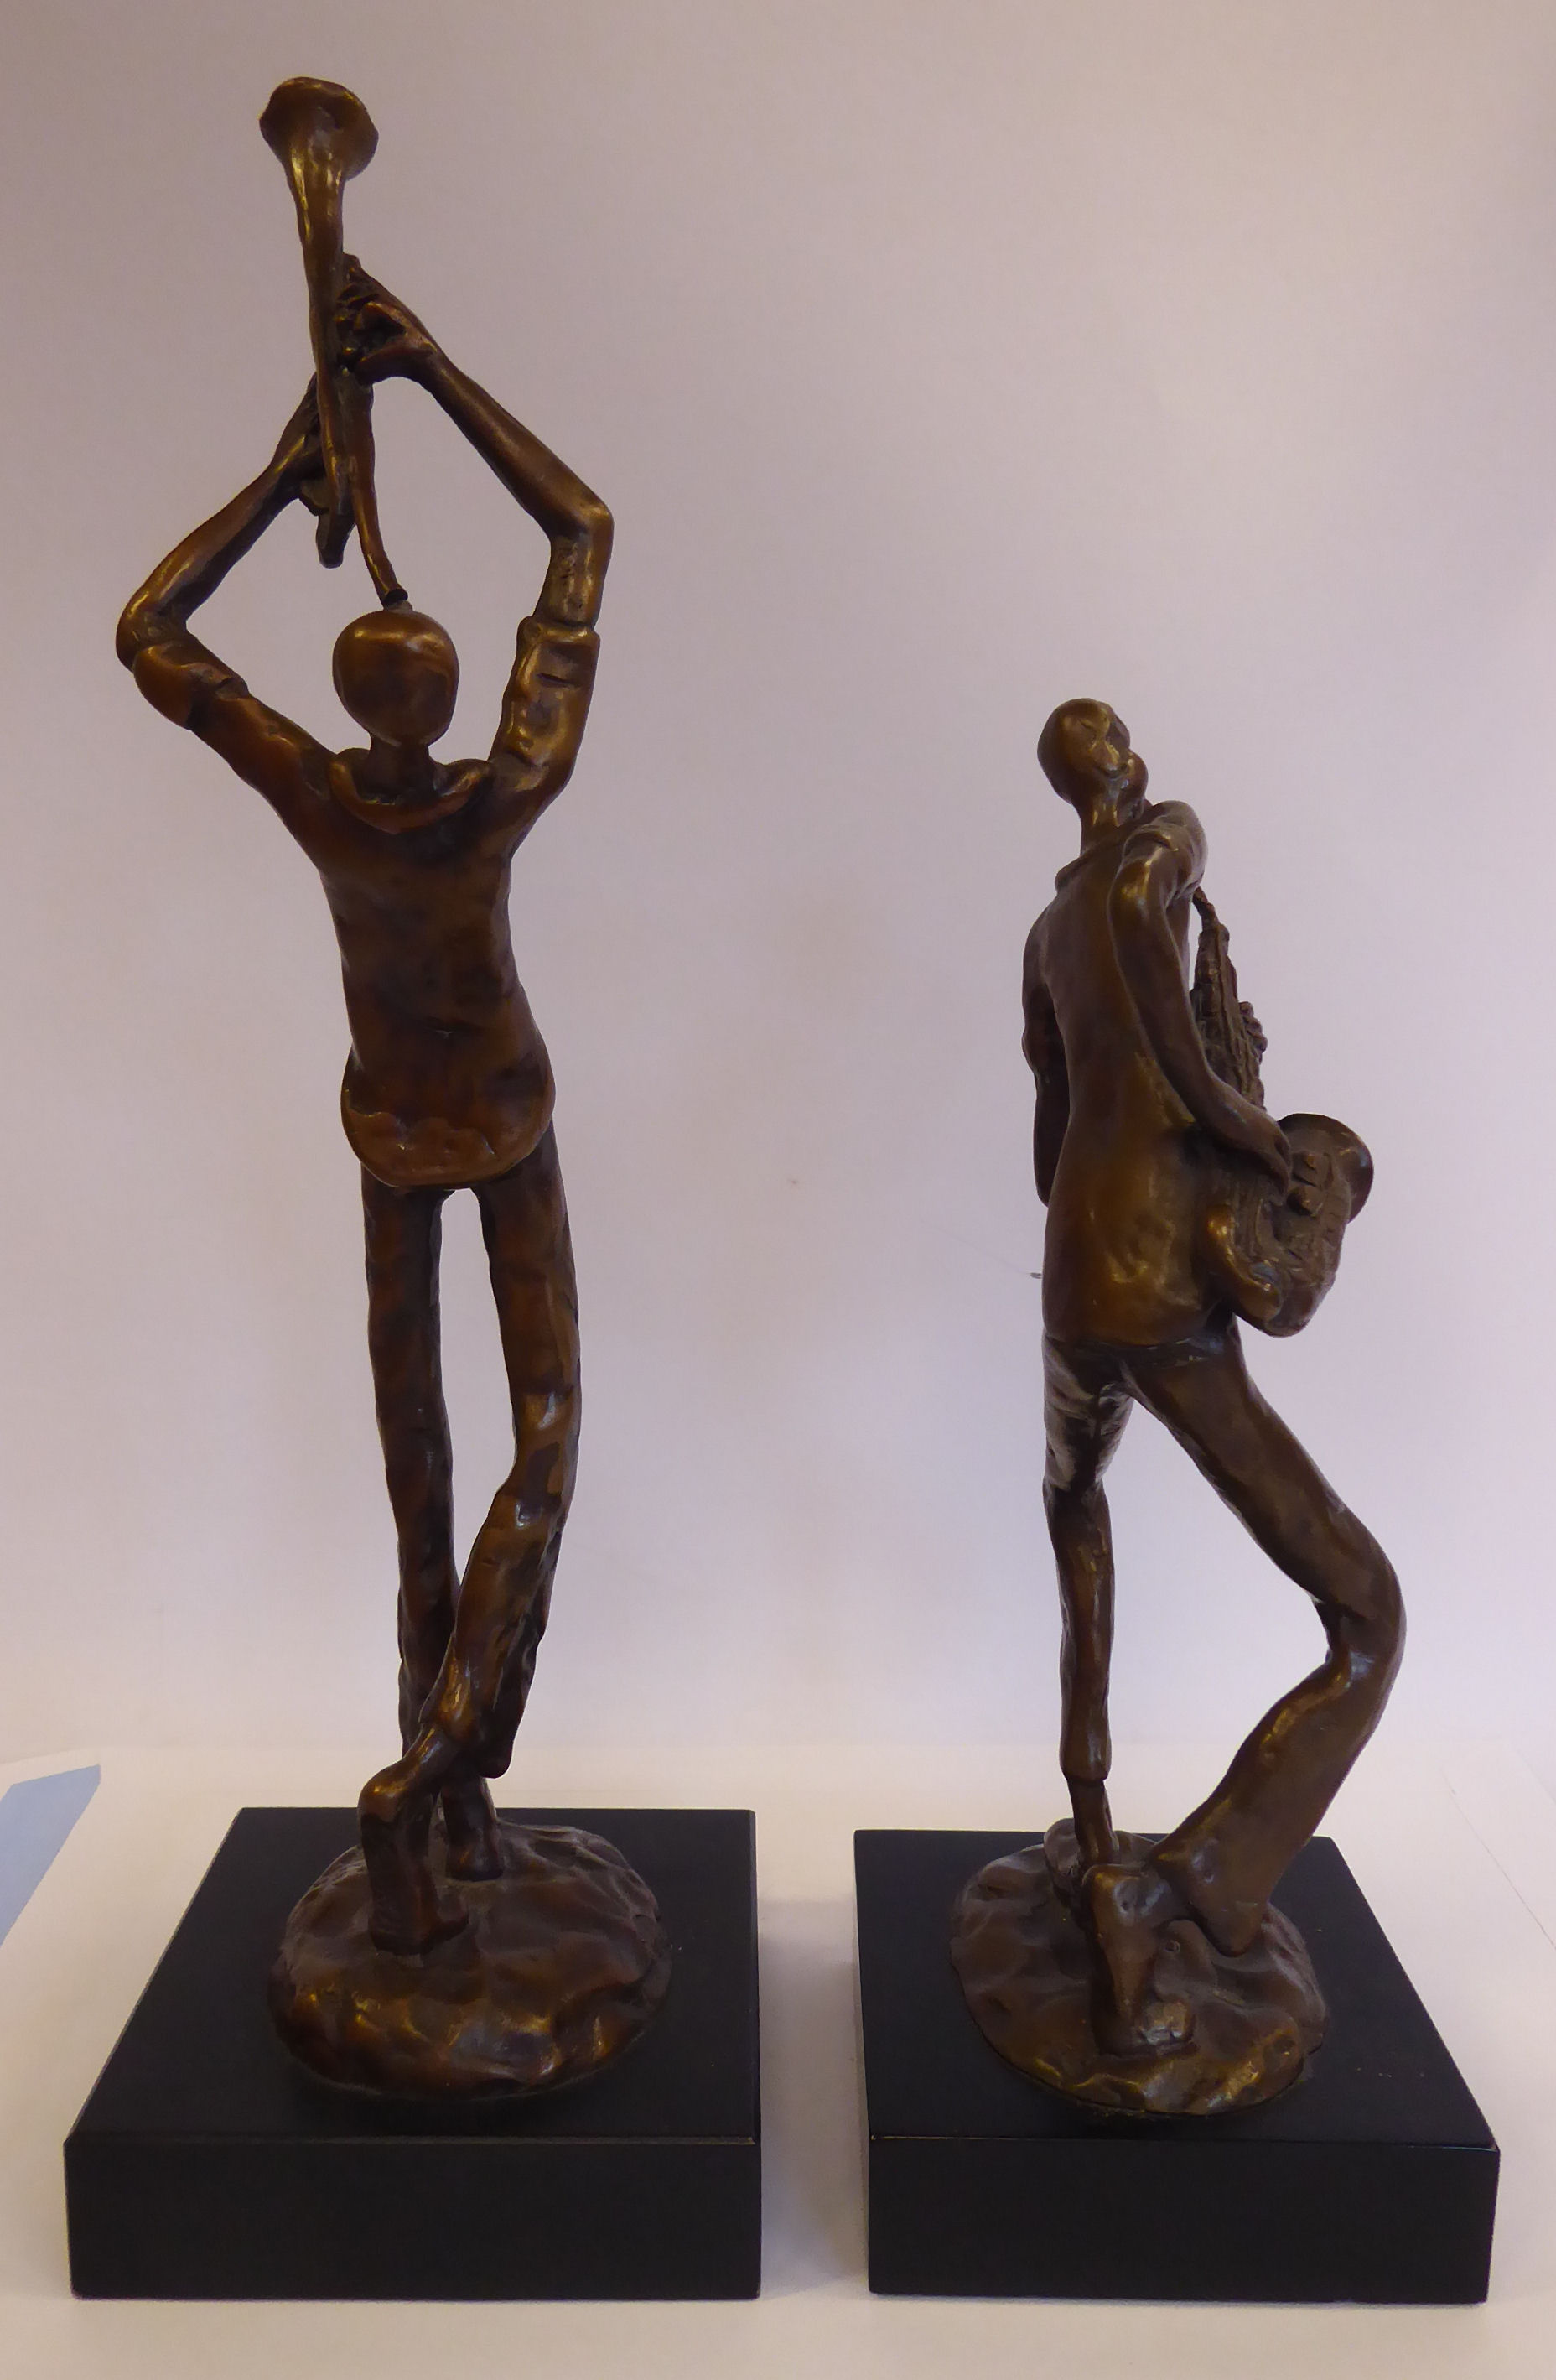 Lot 53 - Two cast and patinated bronze figures, one playing the trumpet,